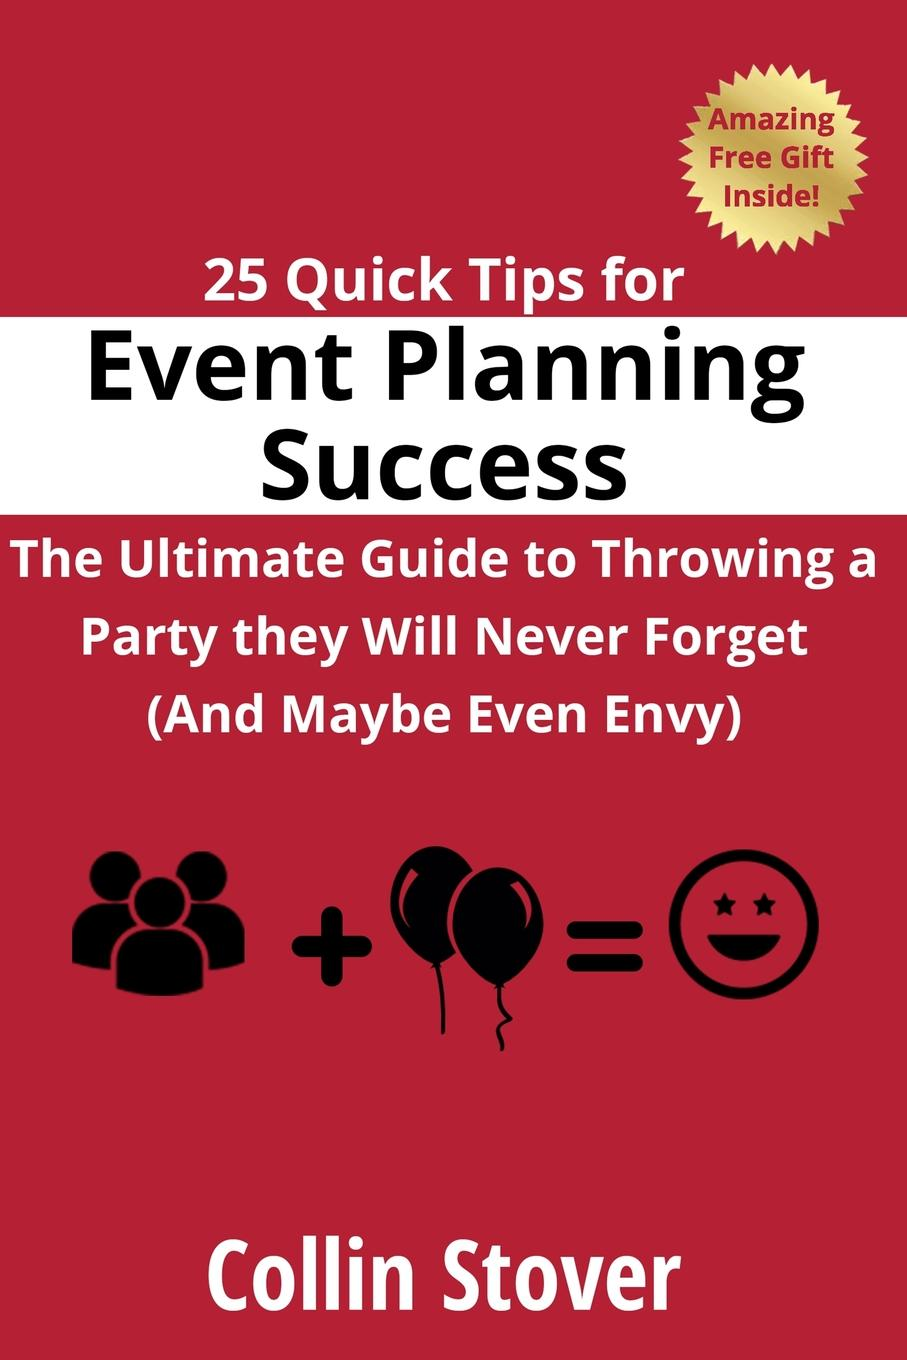 Collin Stover 25 Quick Tips for Event Planning Success. The Ultimate Guide to Throwing a Party they Will Never Forget (And Maybe Even Envy). michael roberto a unlocking creativity how to solve any problem and make the best decisions by shifting creative mindsets